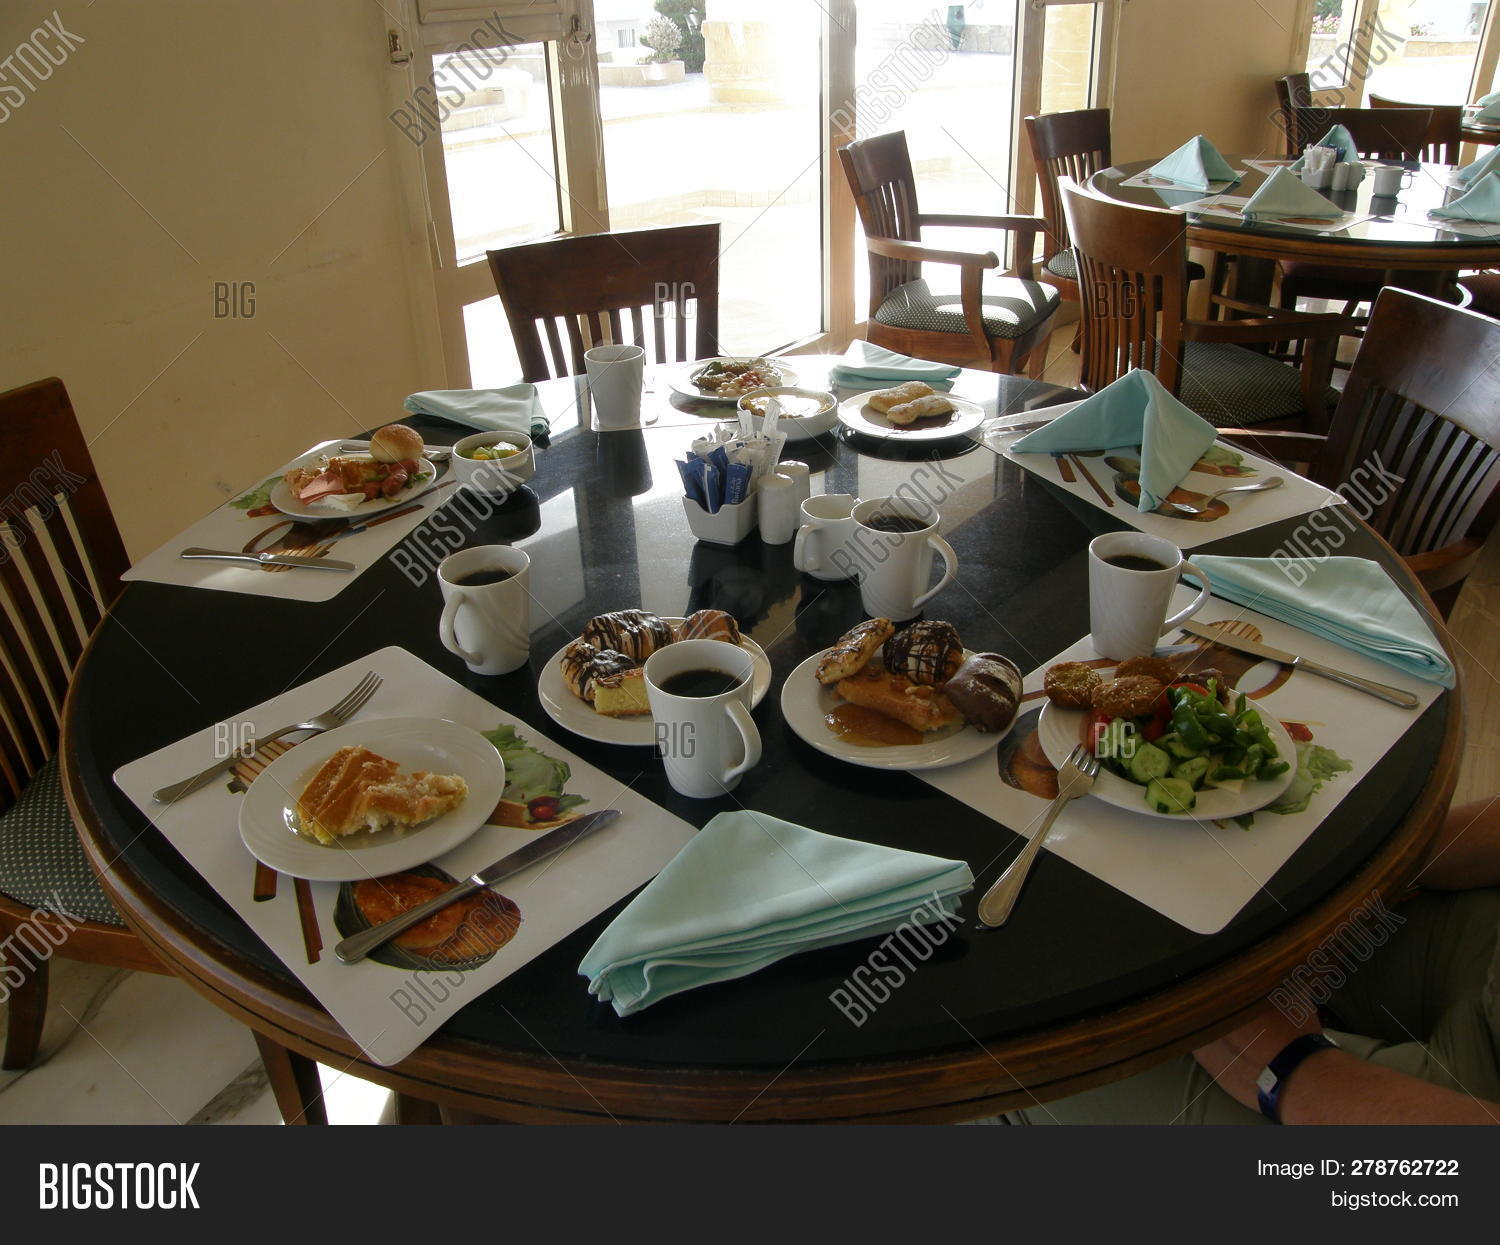 Table Food Drink Plate Image Photo Free Trial Bigstock